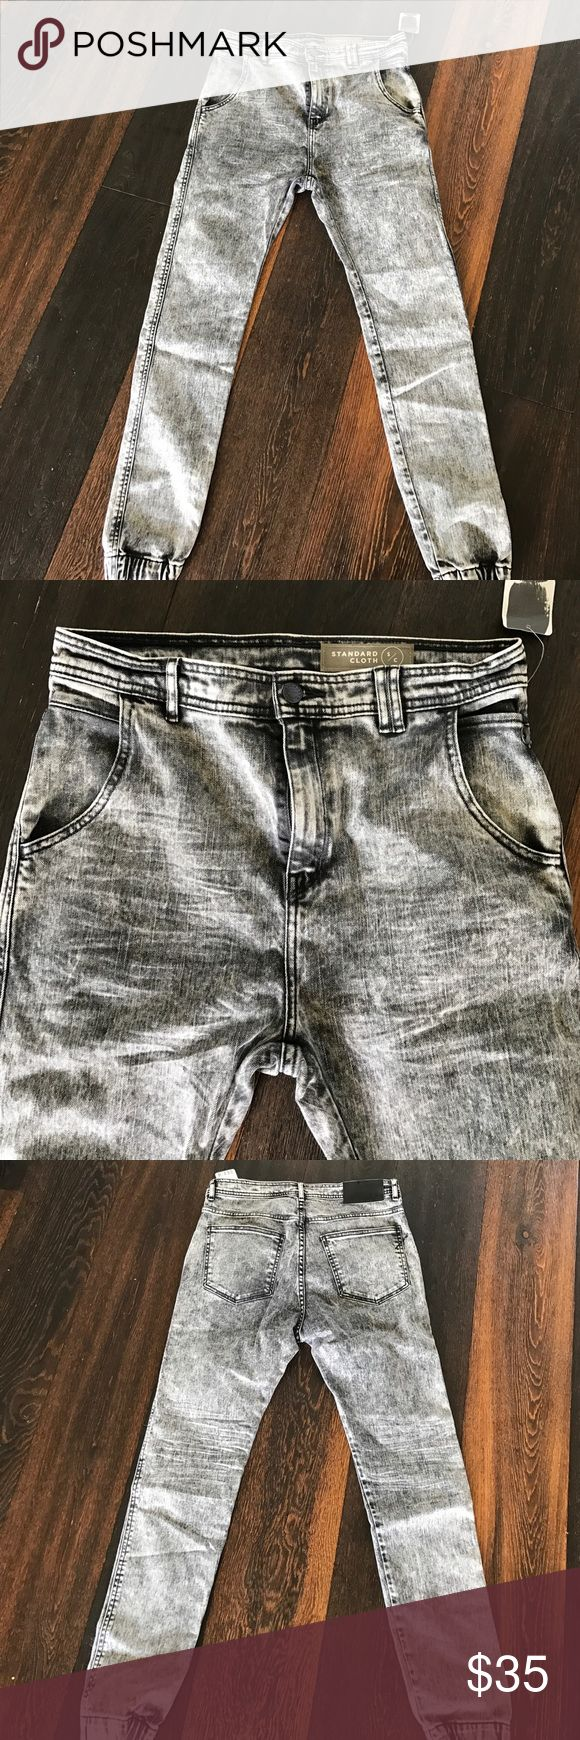 Men's Standard Cloth denim joggers Men's Standard Cloth denim joggers from Urban Outfitters. Color is carbon. New with tags - never worn! Urban Outfitters Pants